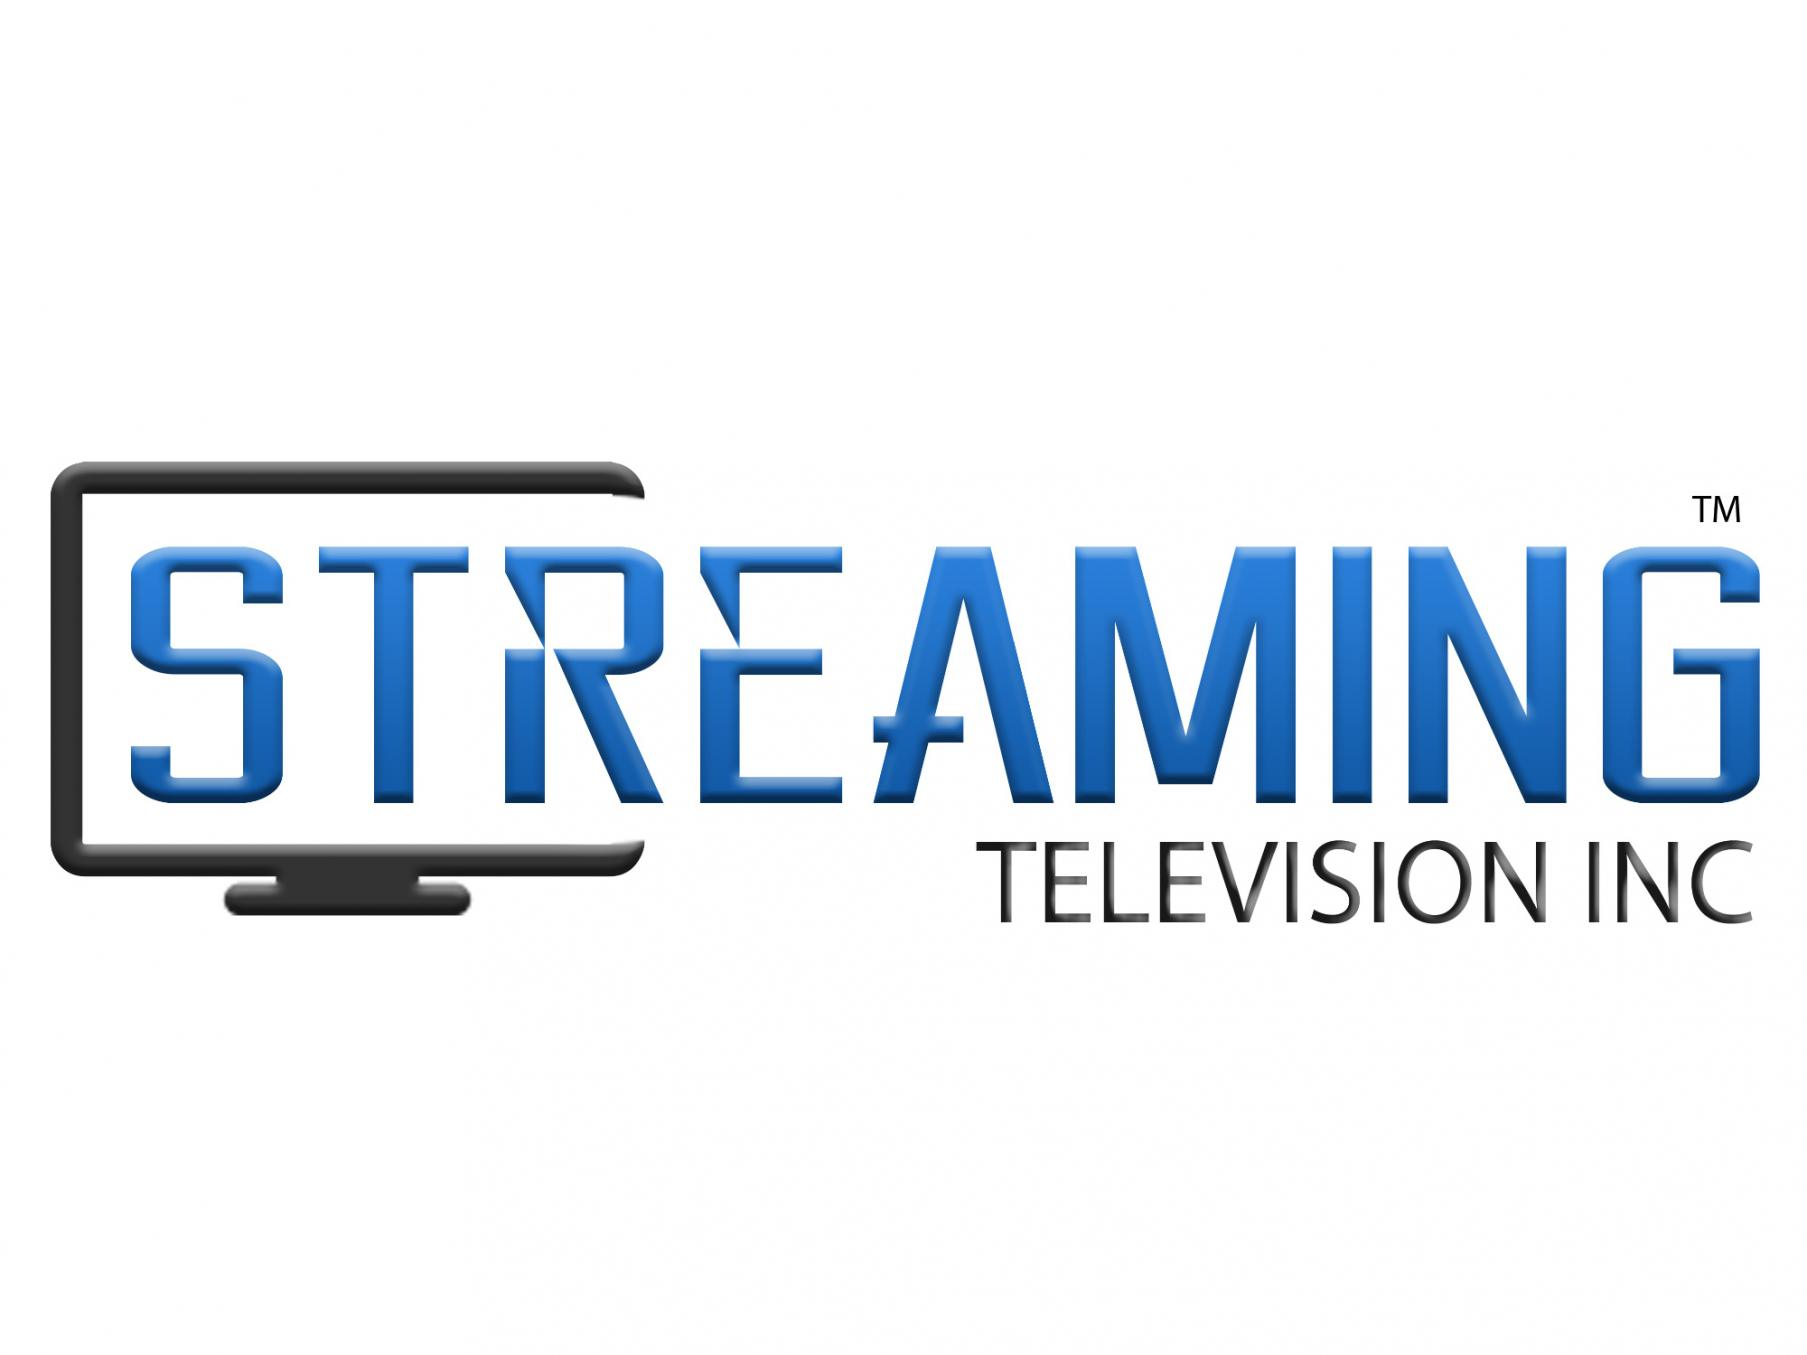 streamingtelevision Logo